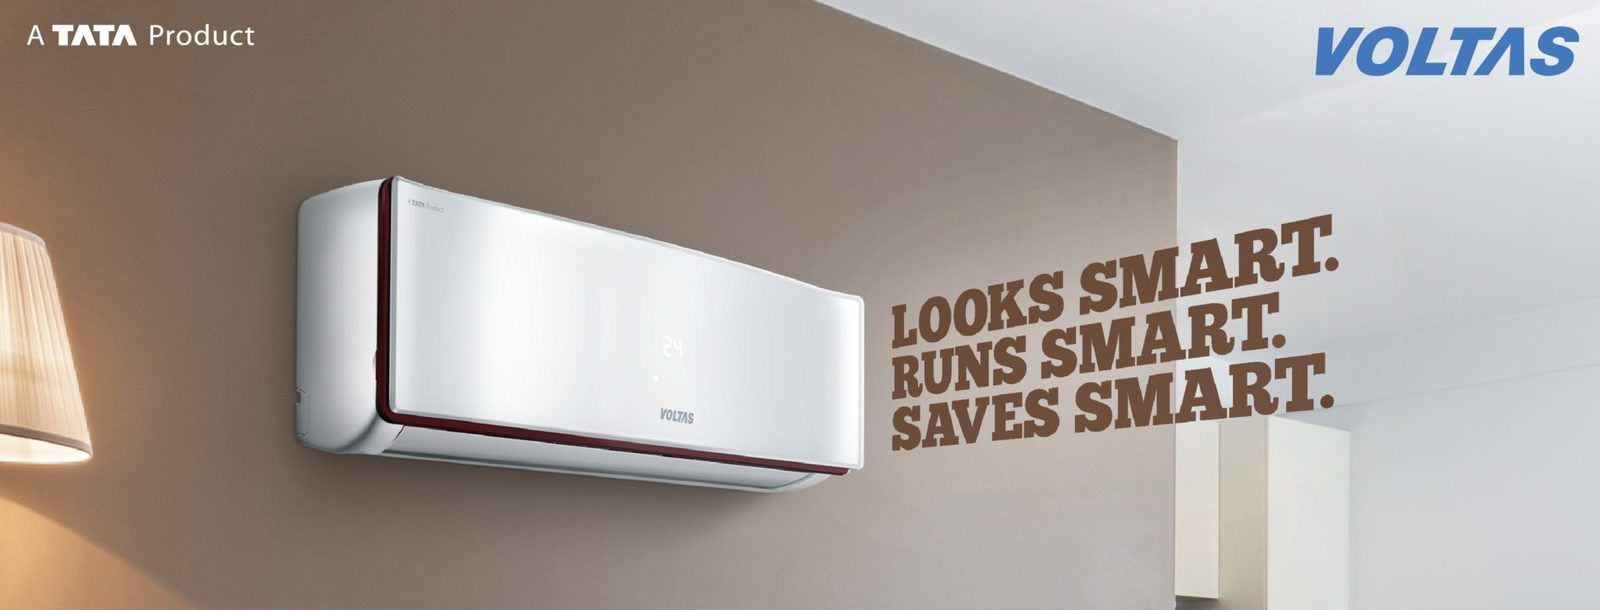 Voltas AC Technologies in India - Review 2019 : Bijli Bachao